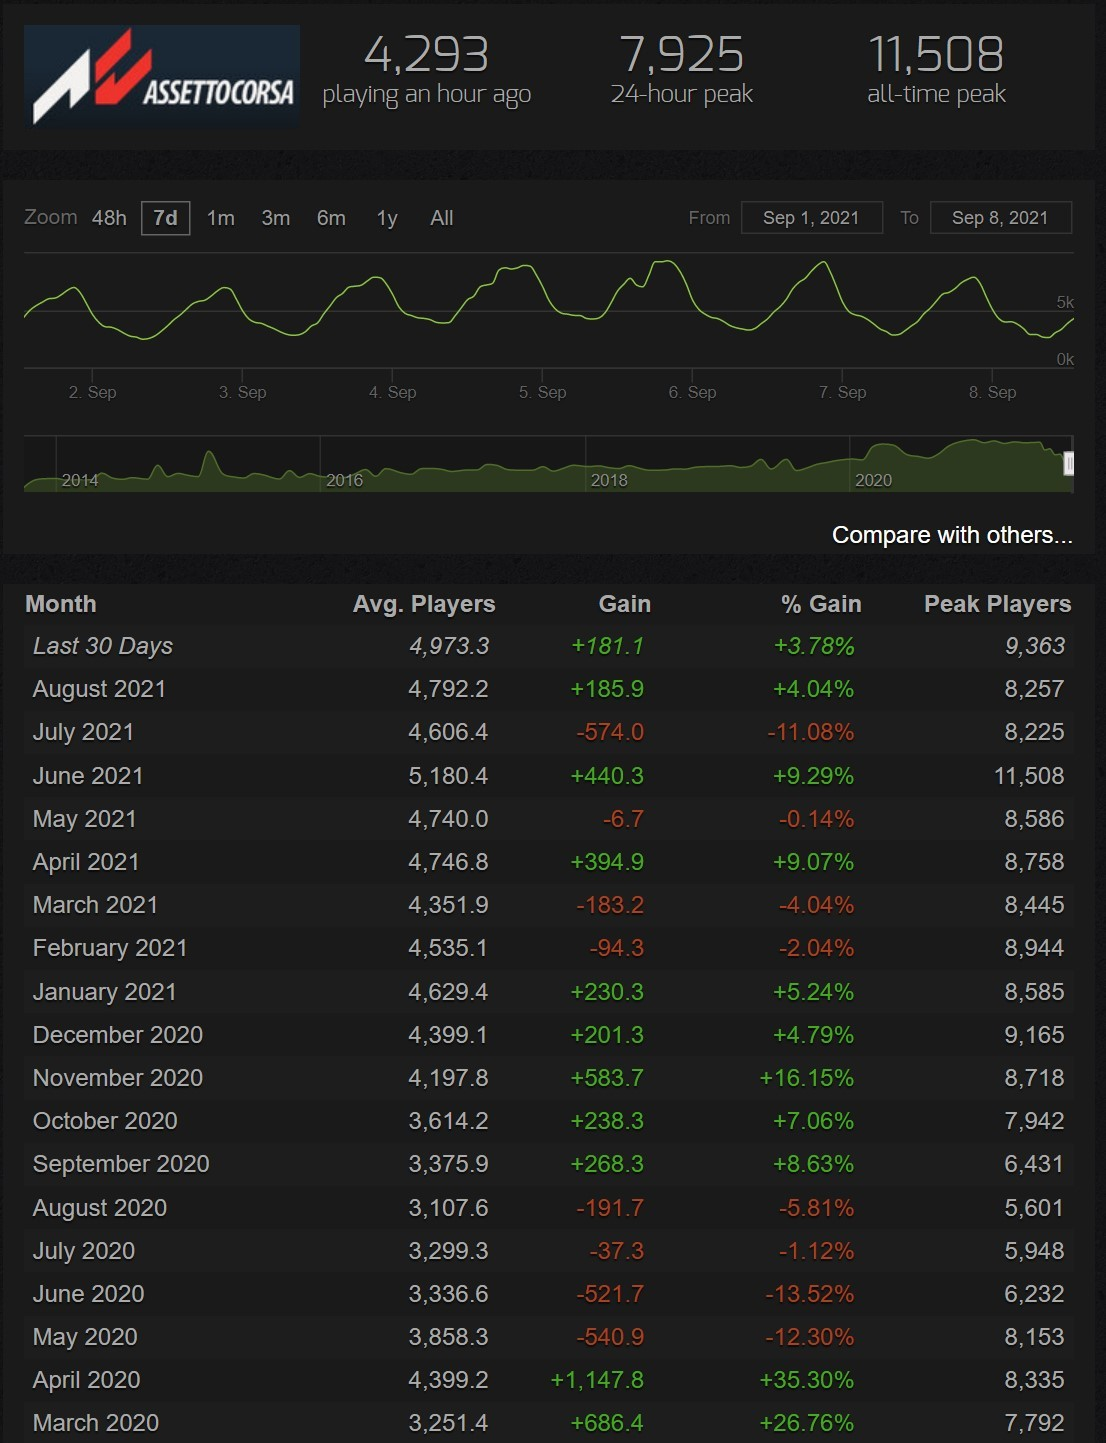 Screenshot of Assetto Corsa's numbers exceeding both AM2 and RaceRoom